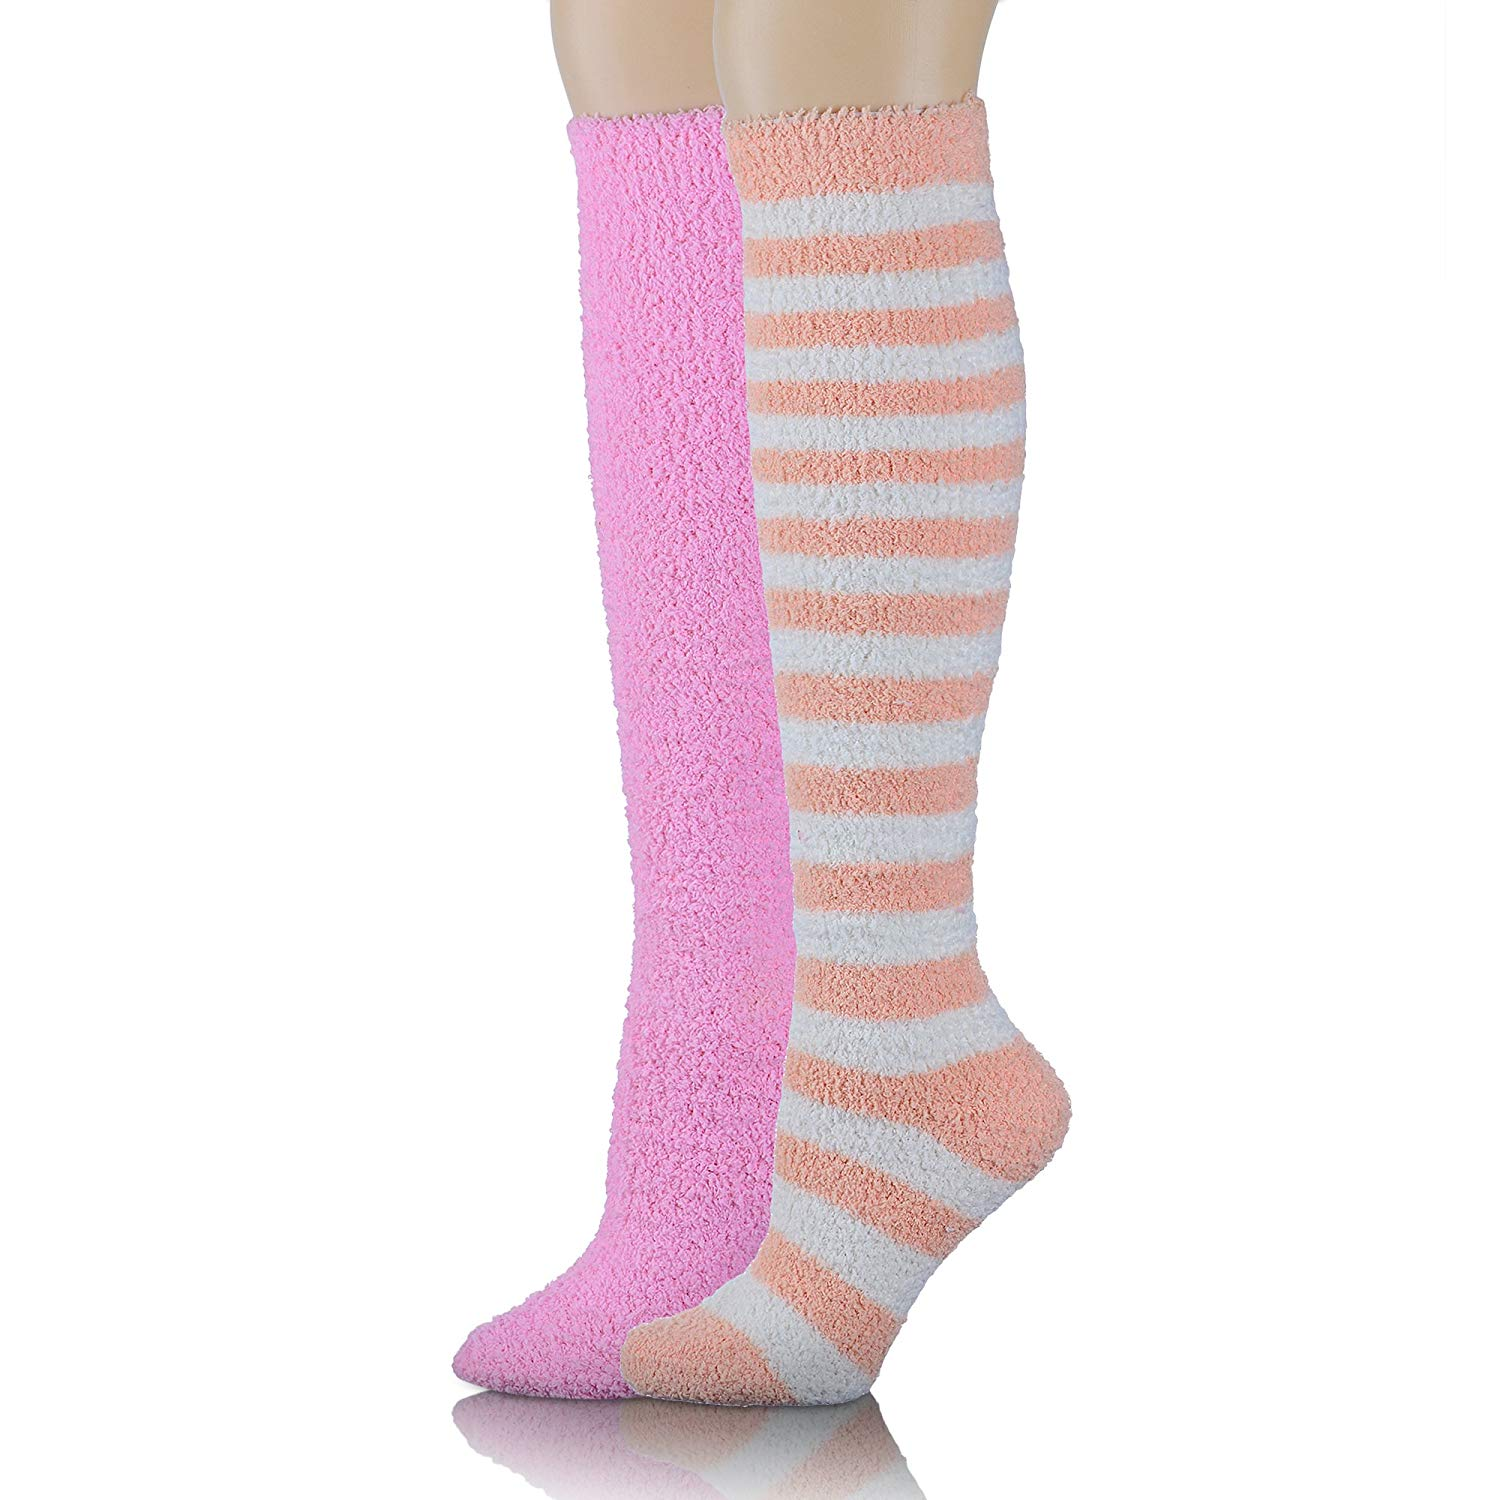 4ce5db7636fc0 Get Quotations · Girls Womens Over Knee High Fuzzy Socks Stockings Fluffy  Soft Warm Cute Cozy Winter Long Christmas